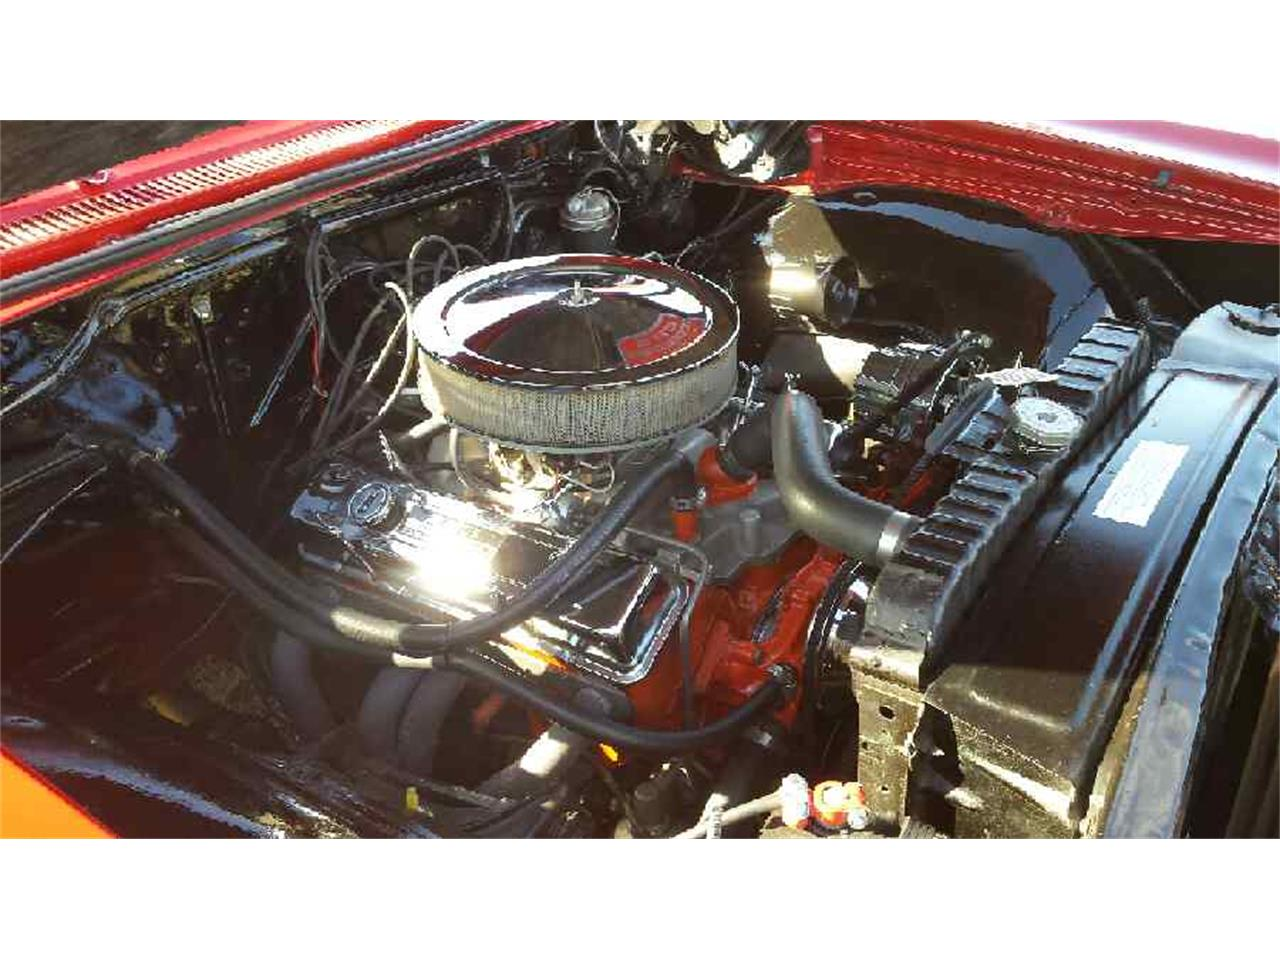 Large Picture of '65 Chevrolet Impala SS located in Alabama - $22,000.00 Offered by a Private Seller - K2ZI